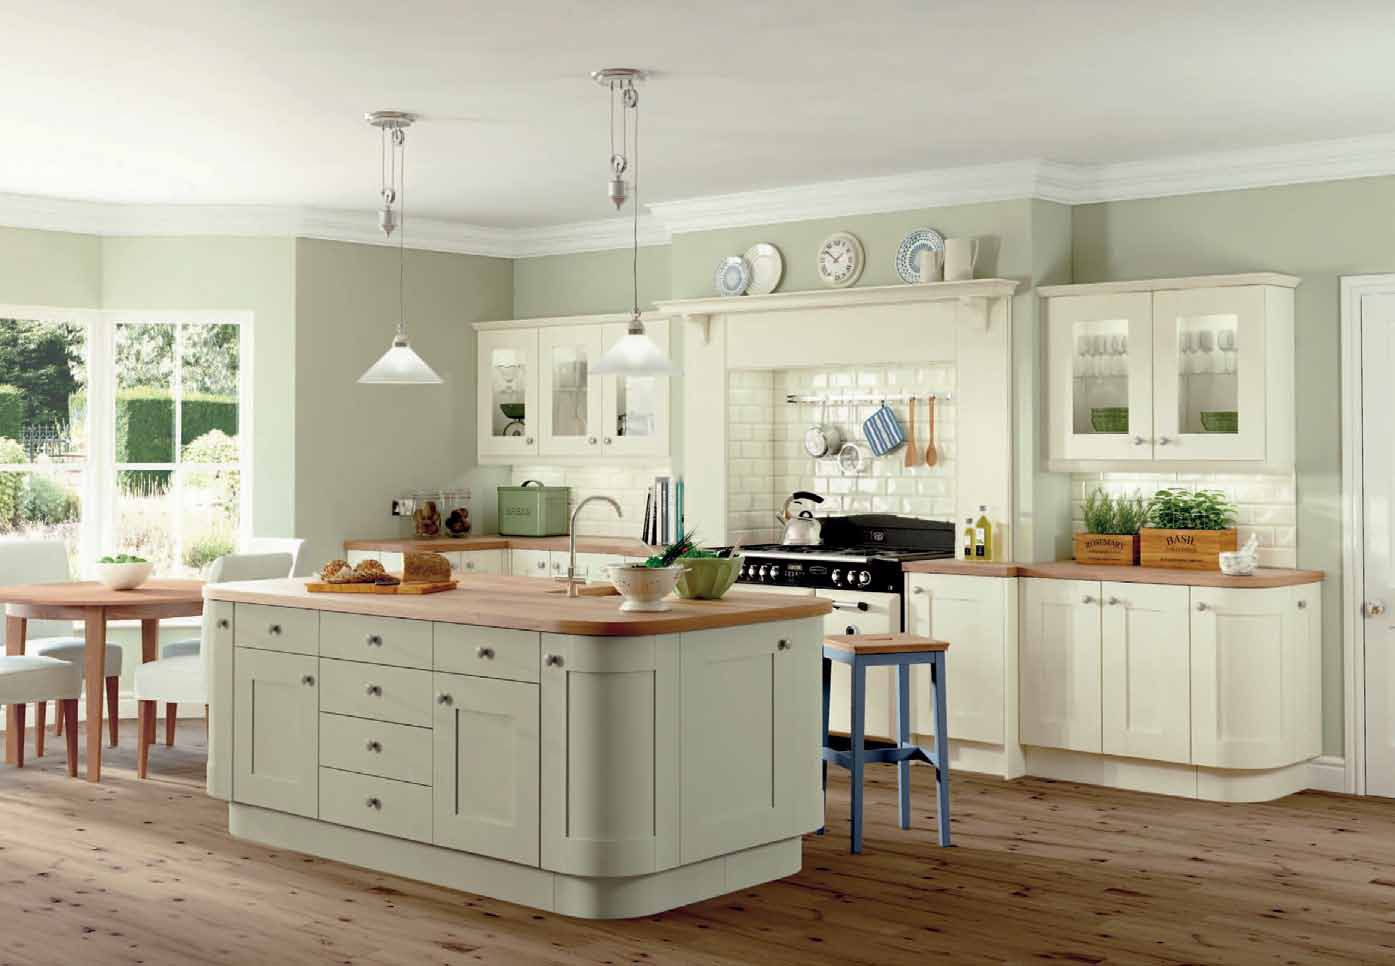 Kitchens with white cabinets and green walls Pastel Green Love The Wall Colour With Cream Units Pinterest Love The Wall Colour With Cream Units Build In 2019 Kitchen